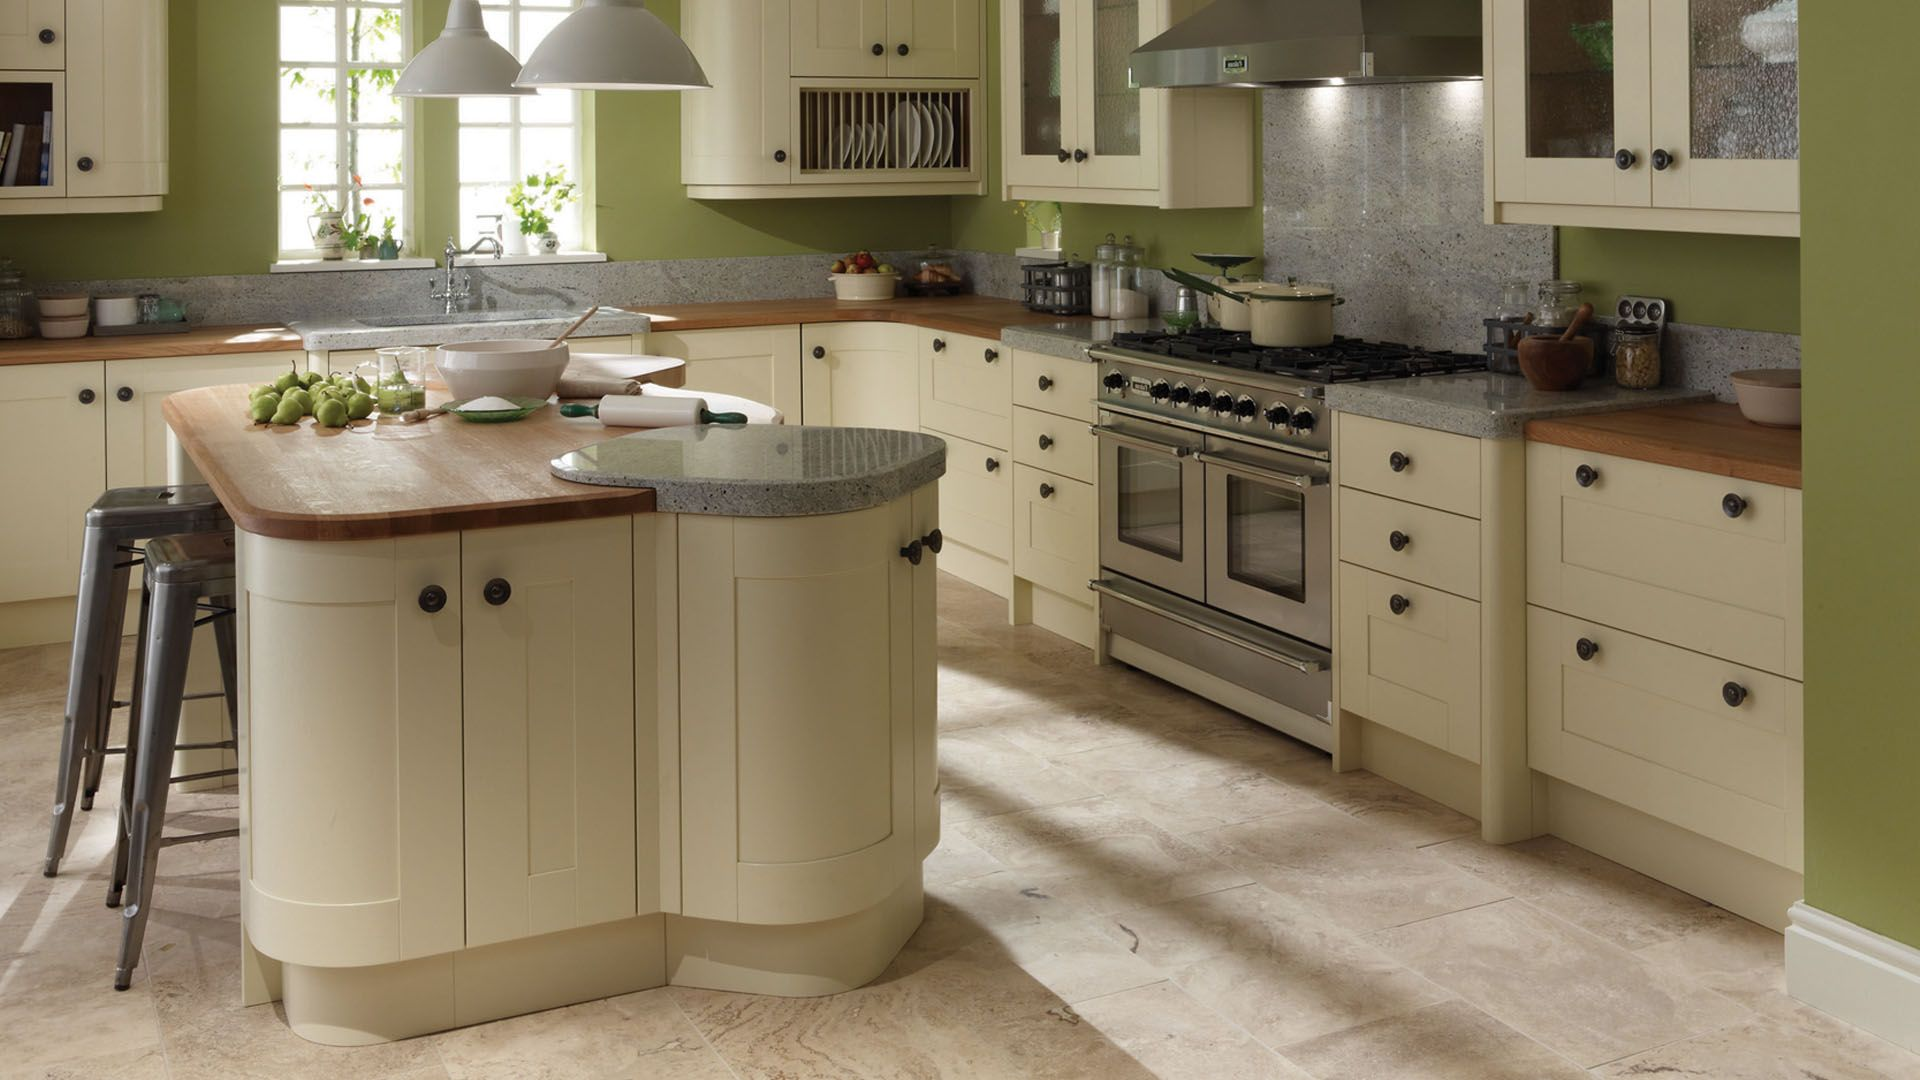 Wyvis Painted Vanilla Pod Kitchens Bedrooms By Ashley Ann Country Kitchen Cabinets Kitchens And Bedrooms Green Country Kitchen Beautiful kitchens bedrooms and